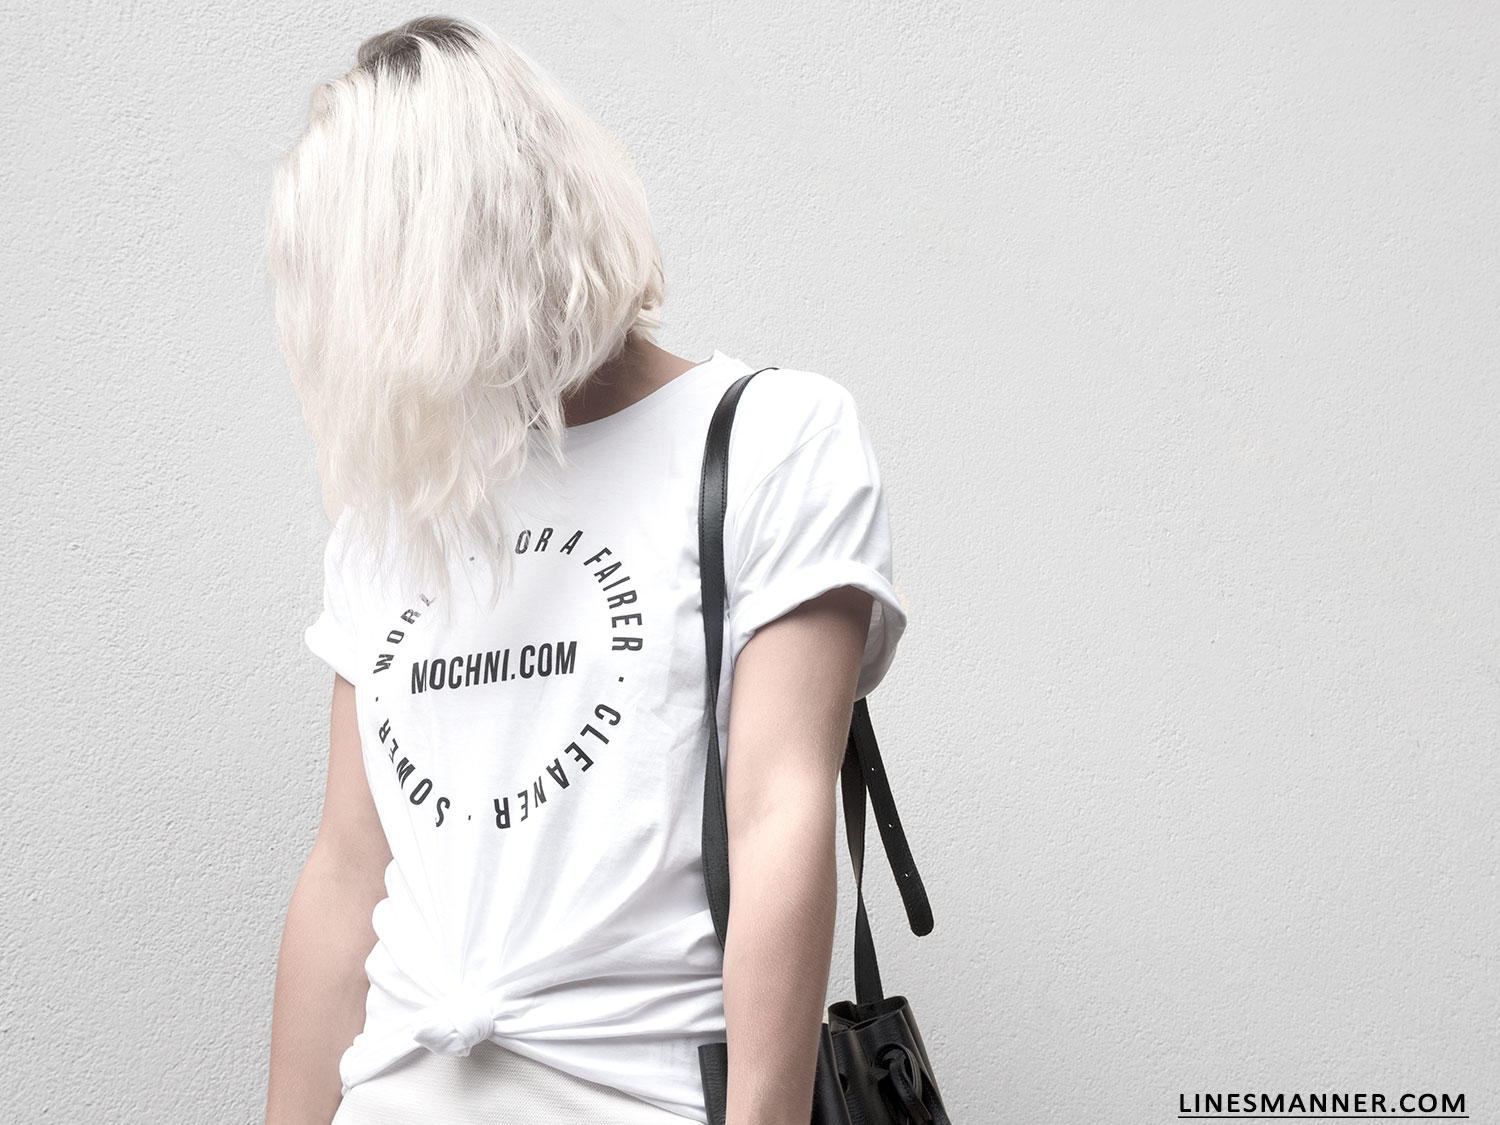 Lines-Manner-Mochni-Slow_Fashion_Plateform-Sustainable-Eco_Fashion-Awareness-Tee-Fairer-World-Conscious-Essentials-Minimal-Monochrome-Quality-Organic-9